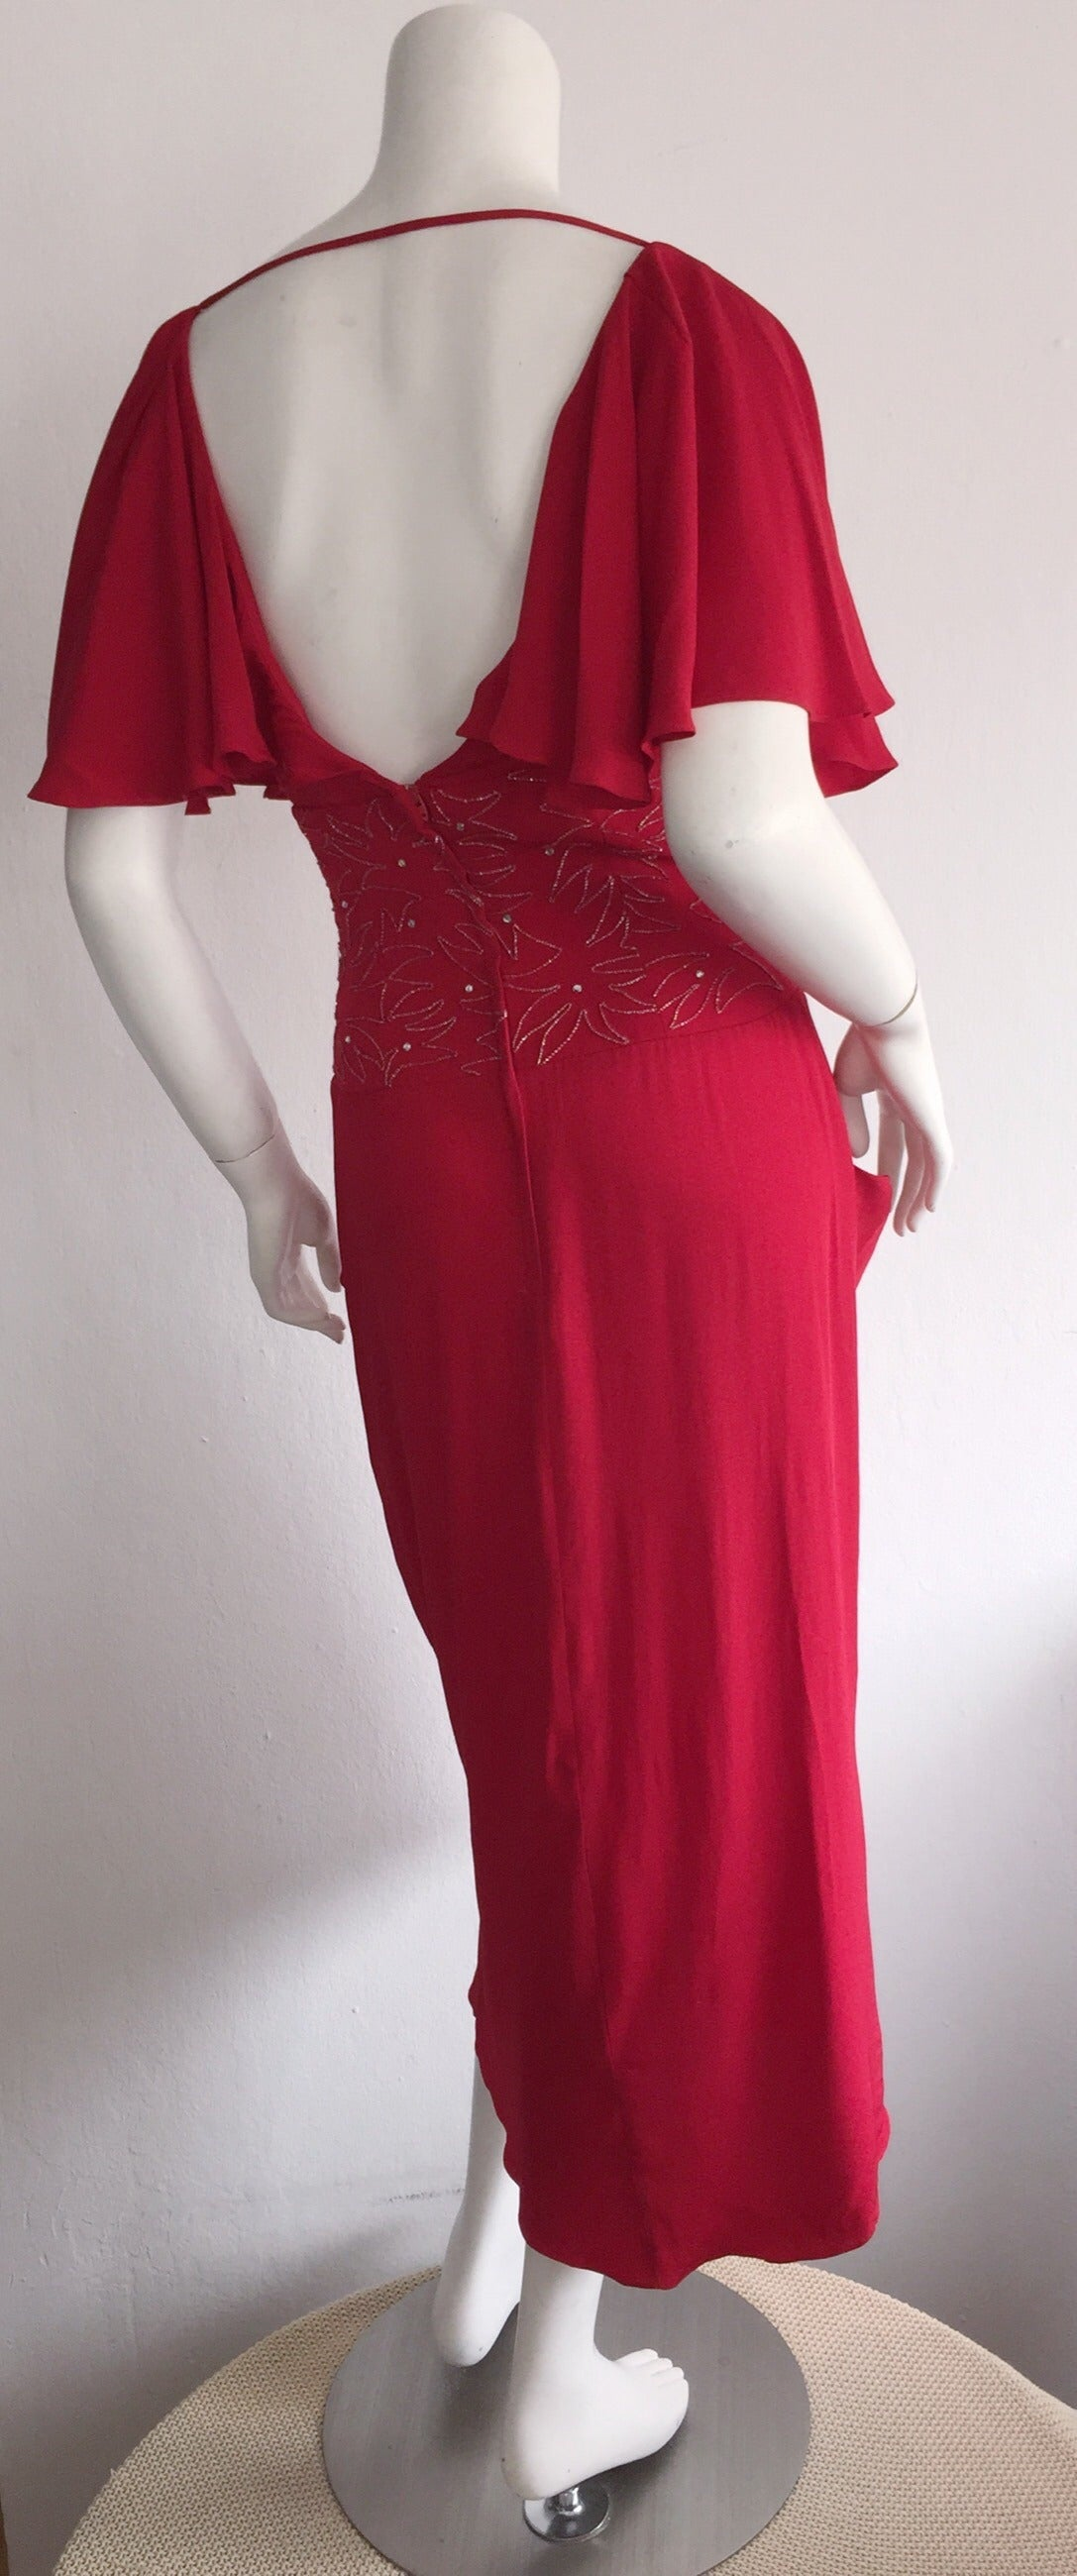 Beautiful Vintage Eletra Casadei Lipstick Red Flutter Dress w/ Rhinestones In Excellent Condition For Sale In Chicago, IL